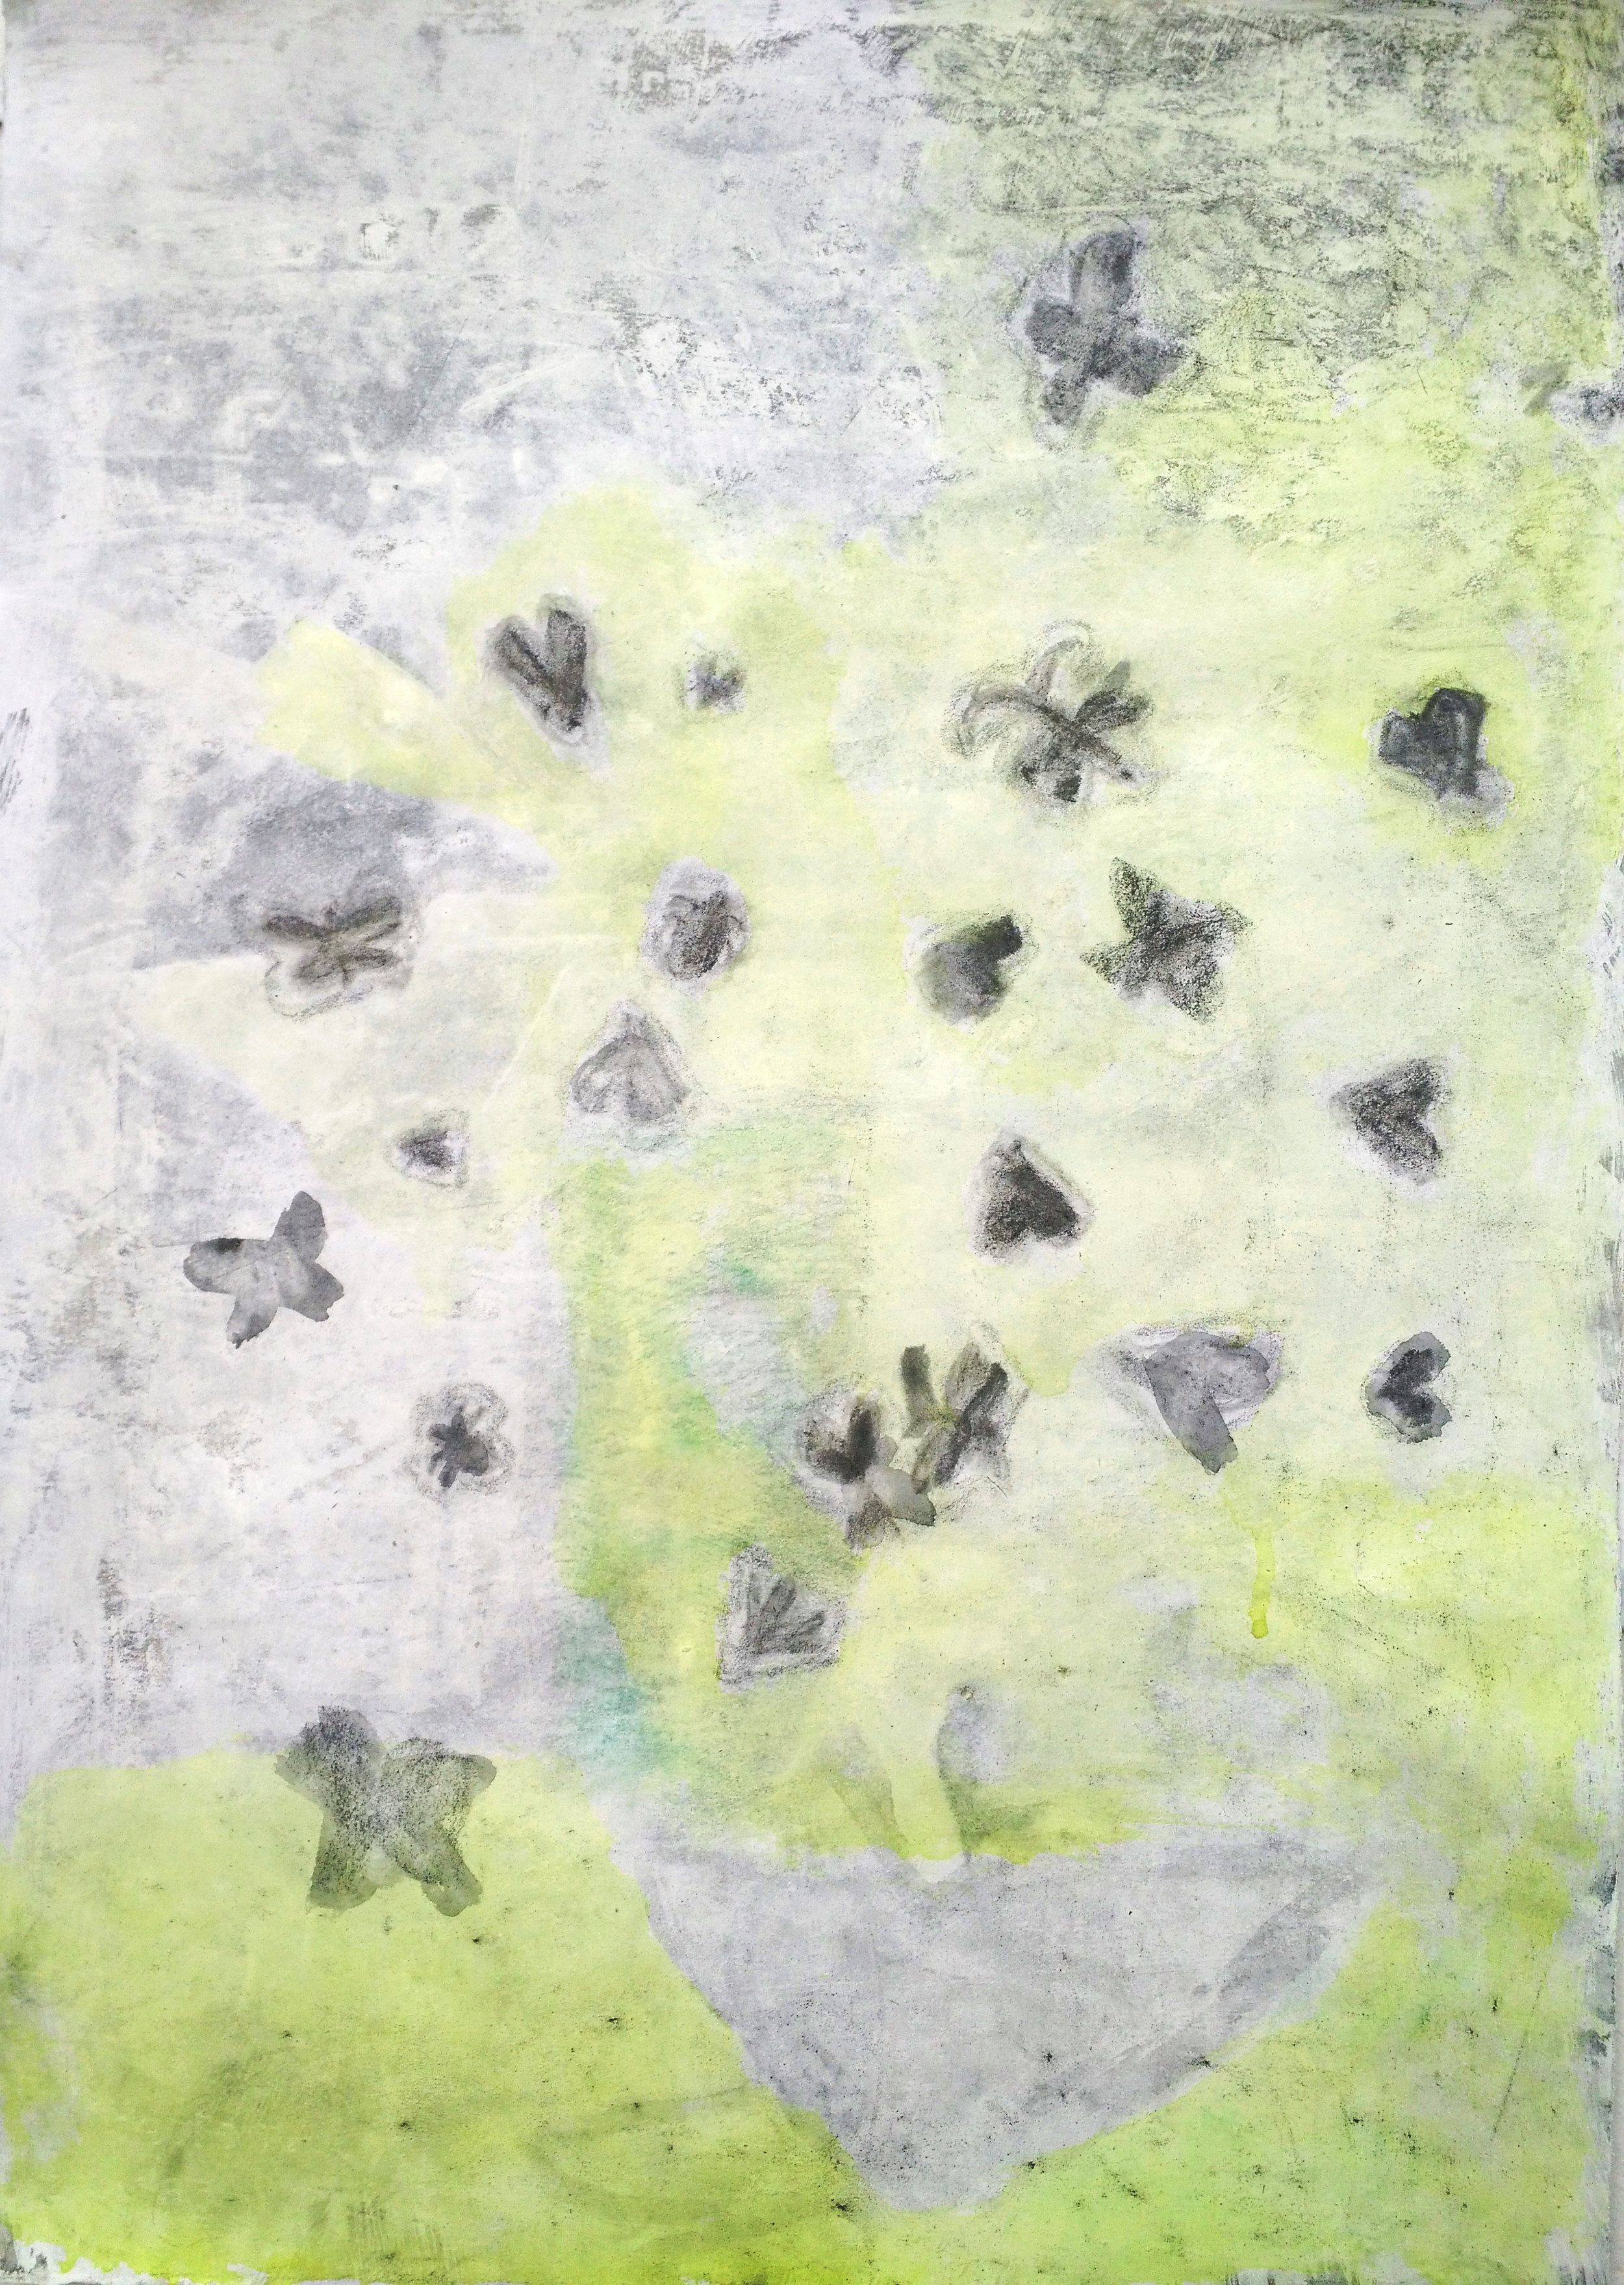 """Laurence Pilon,  It was superb, this last protest , 2019, Watercolour and graphite on prepared paper, 24"""" x 20"""" (61 x 51 cm)"""